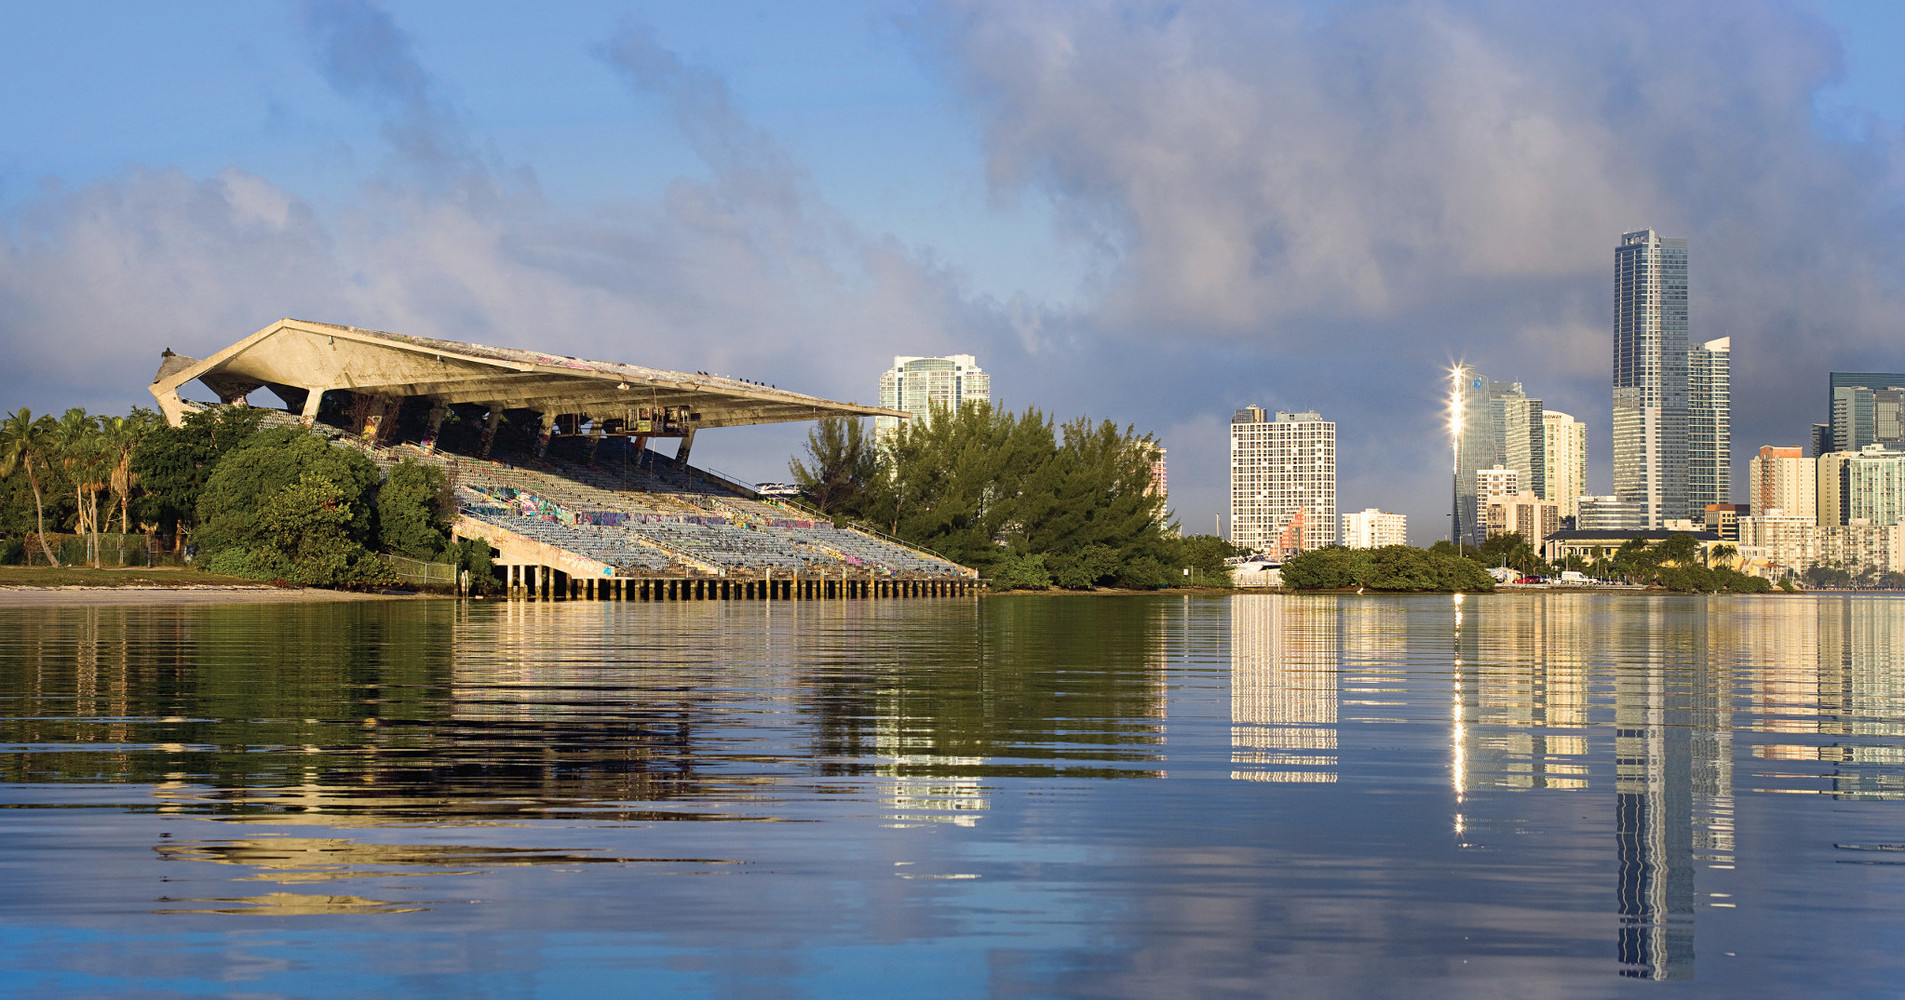 The AquaX US calendar will kick off at the Miami Marine Stadium on April 21/22